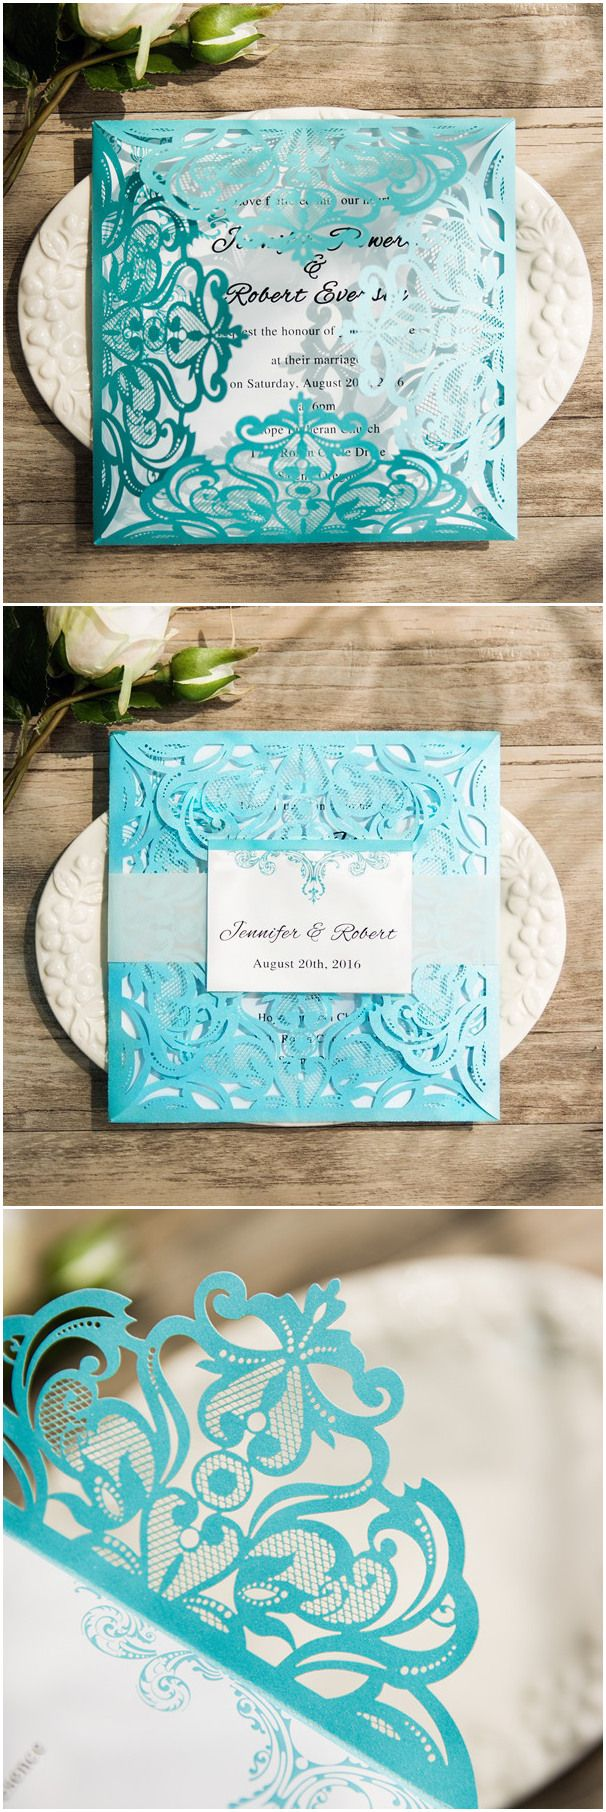 "Trendy, romantic and chic designs from @ElegantWeddingInvites. Save 10% on these wedding invitations with promo code ""MOD""."